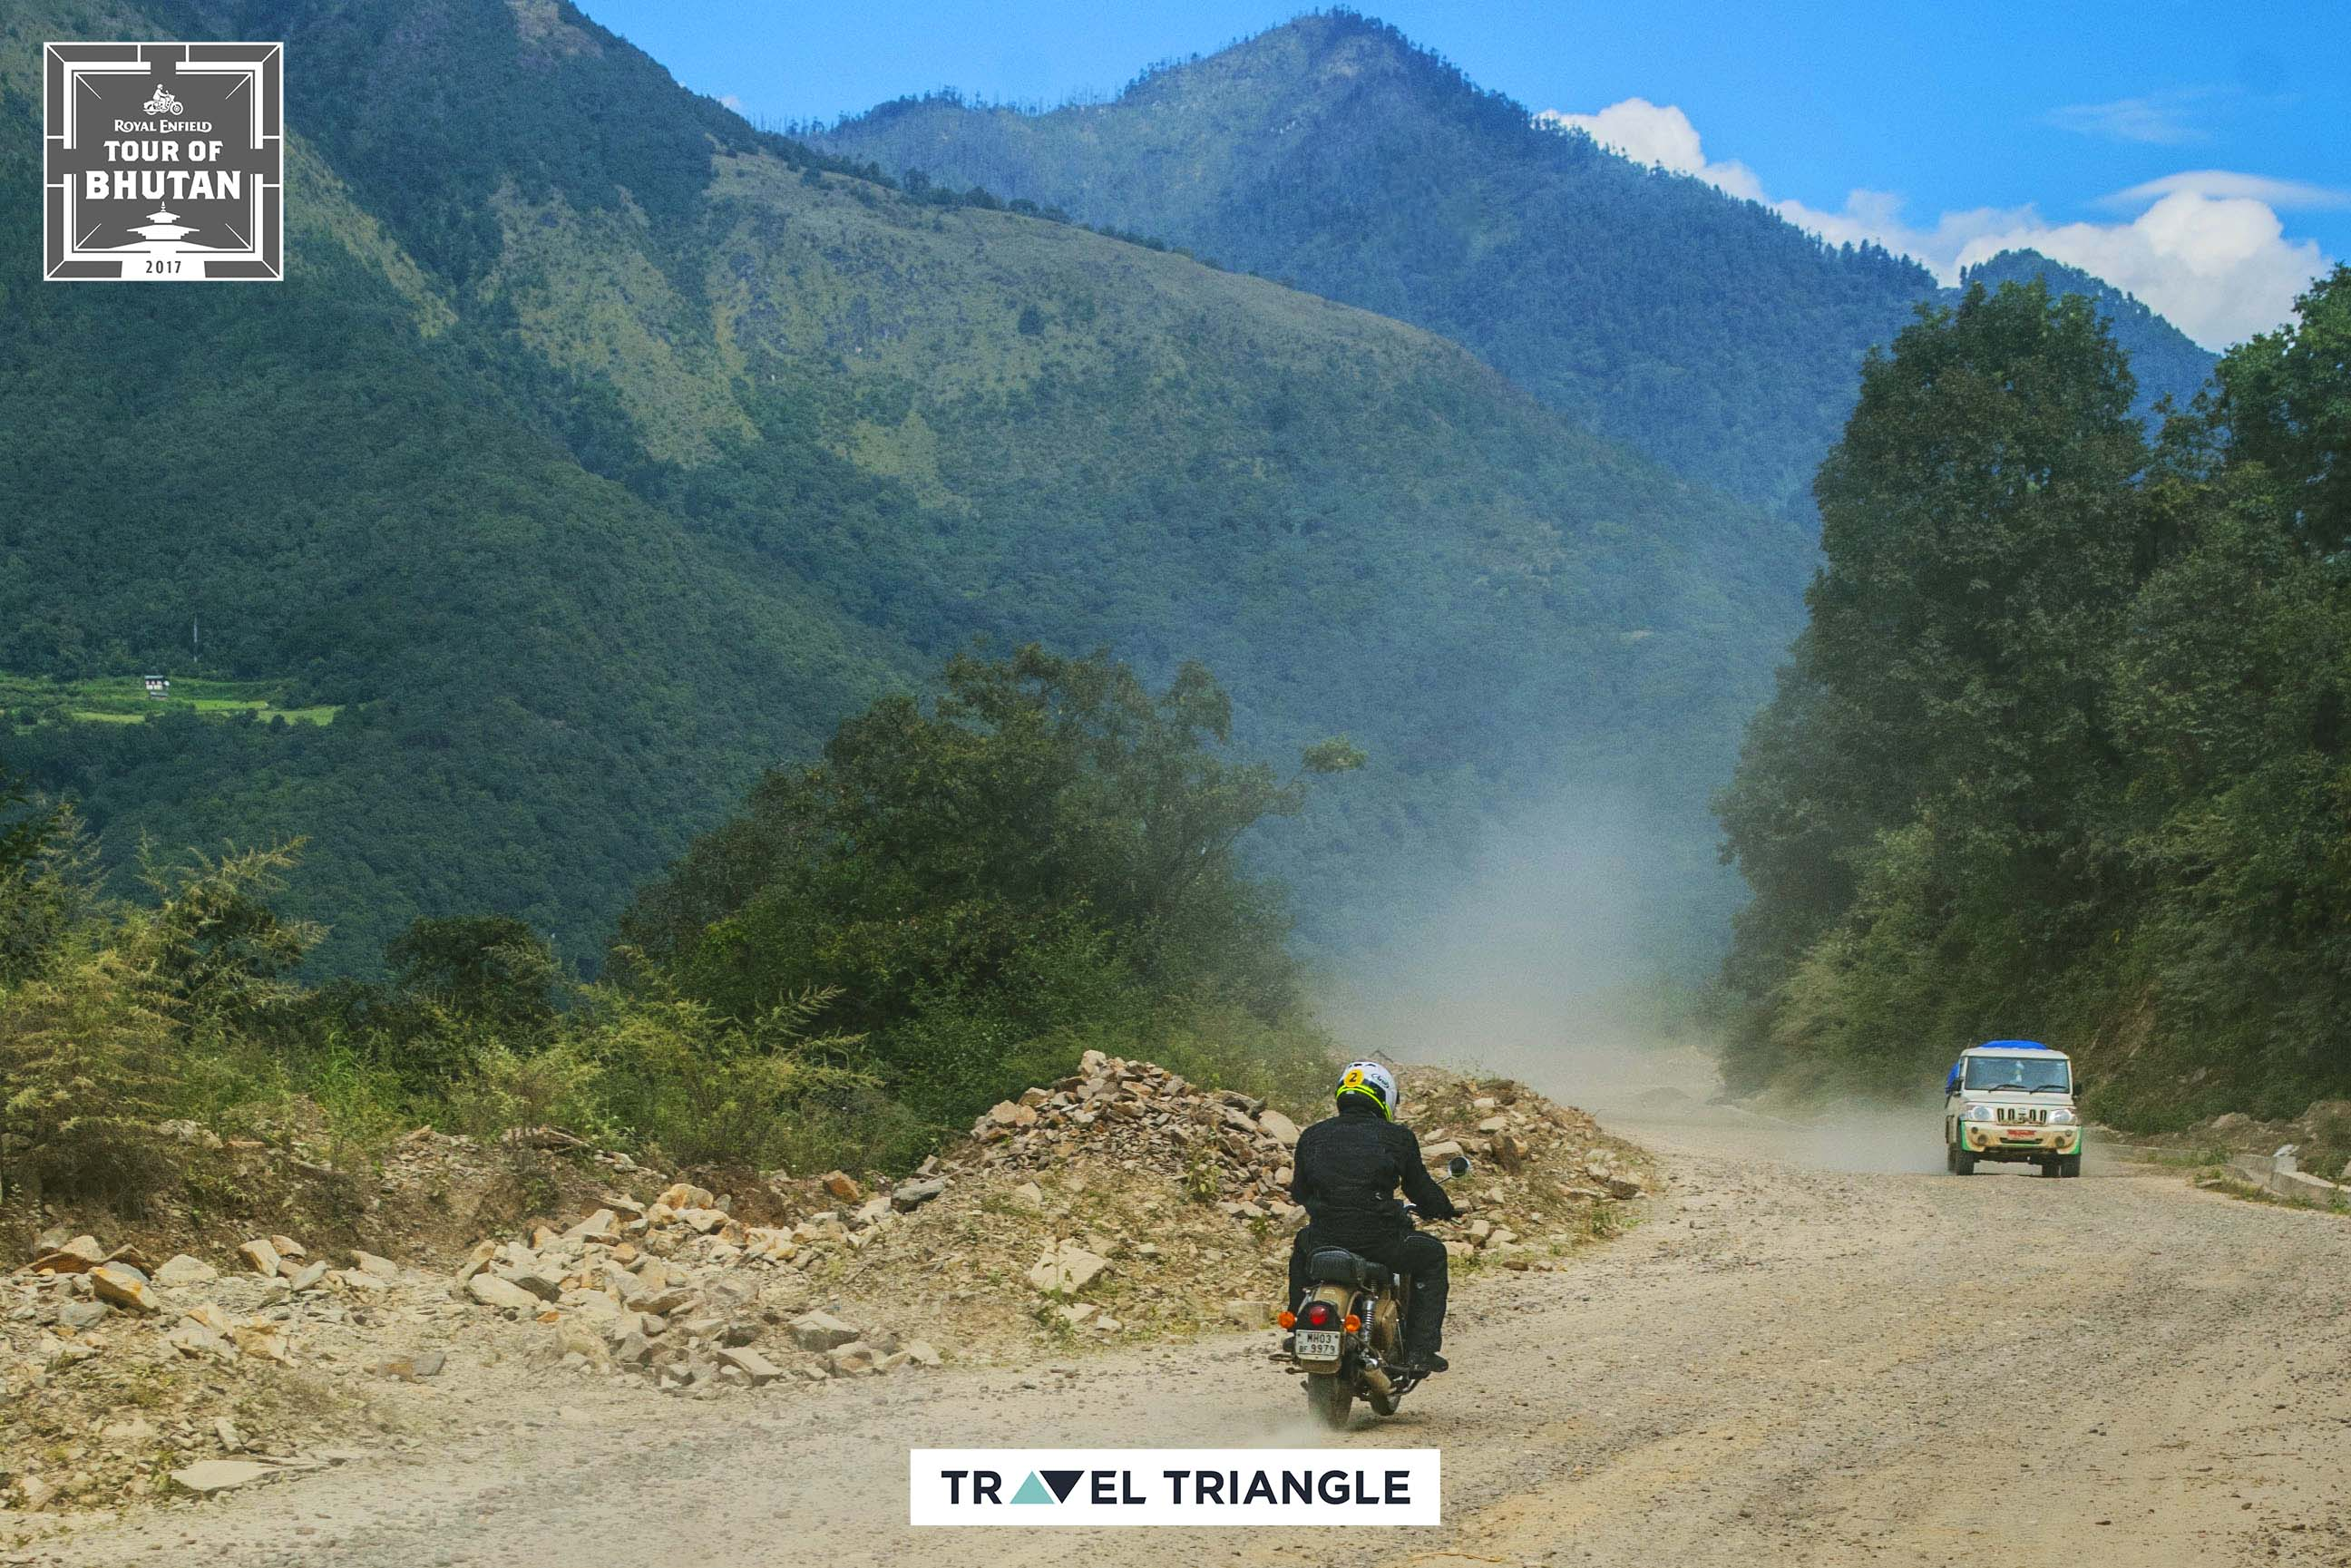 Punakha to Phobjikha: riding through hills